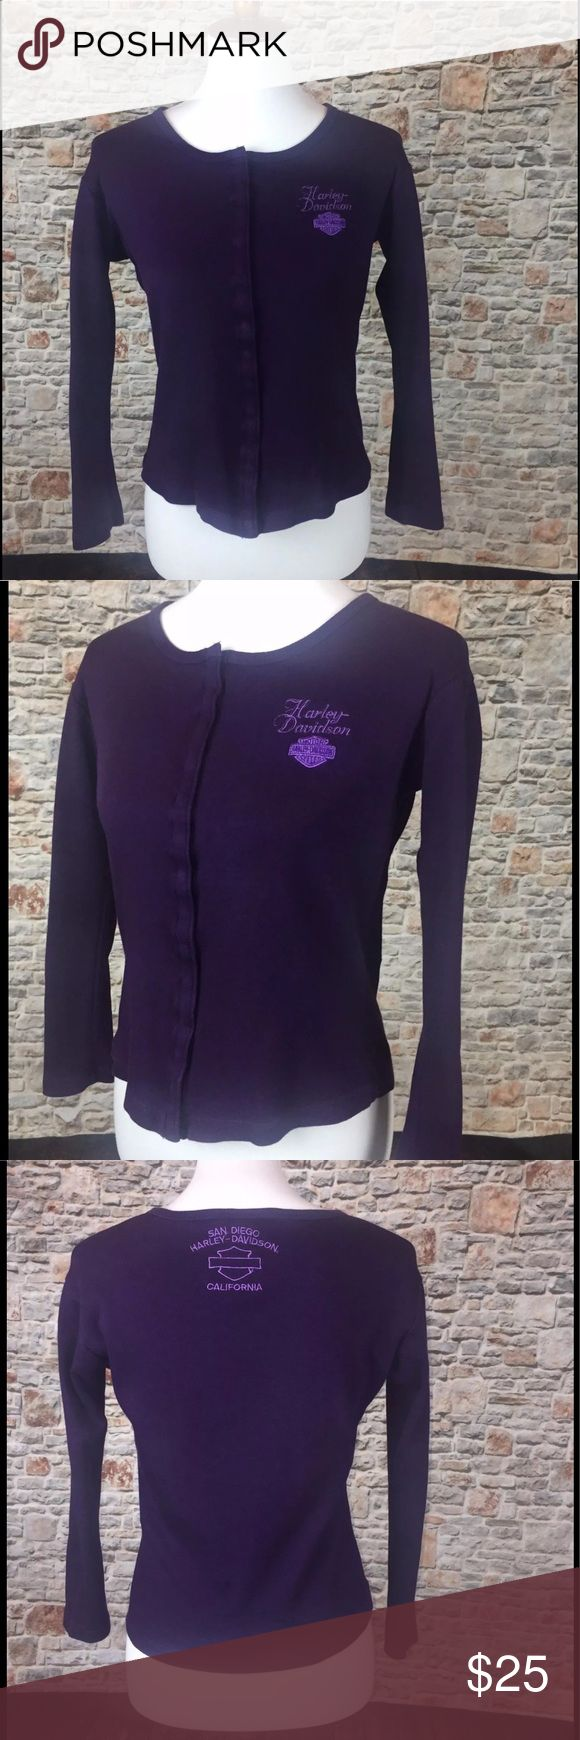 RARE Harley Davidson Vintage Women's Snap Top Sz S RARE Harley Davidson Vintage Women's Snap Down Riding Purple Top Sz S Length 20, Chest 16. Roll Down the Highway! Classic Vintage Biker Snap Top for the biker or Harley Lover from San Diego Harley. BORN TO BE WILD! Harley-Davidson Tops Tees - Long Sleeve